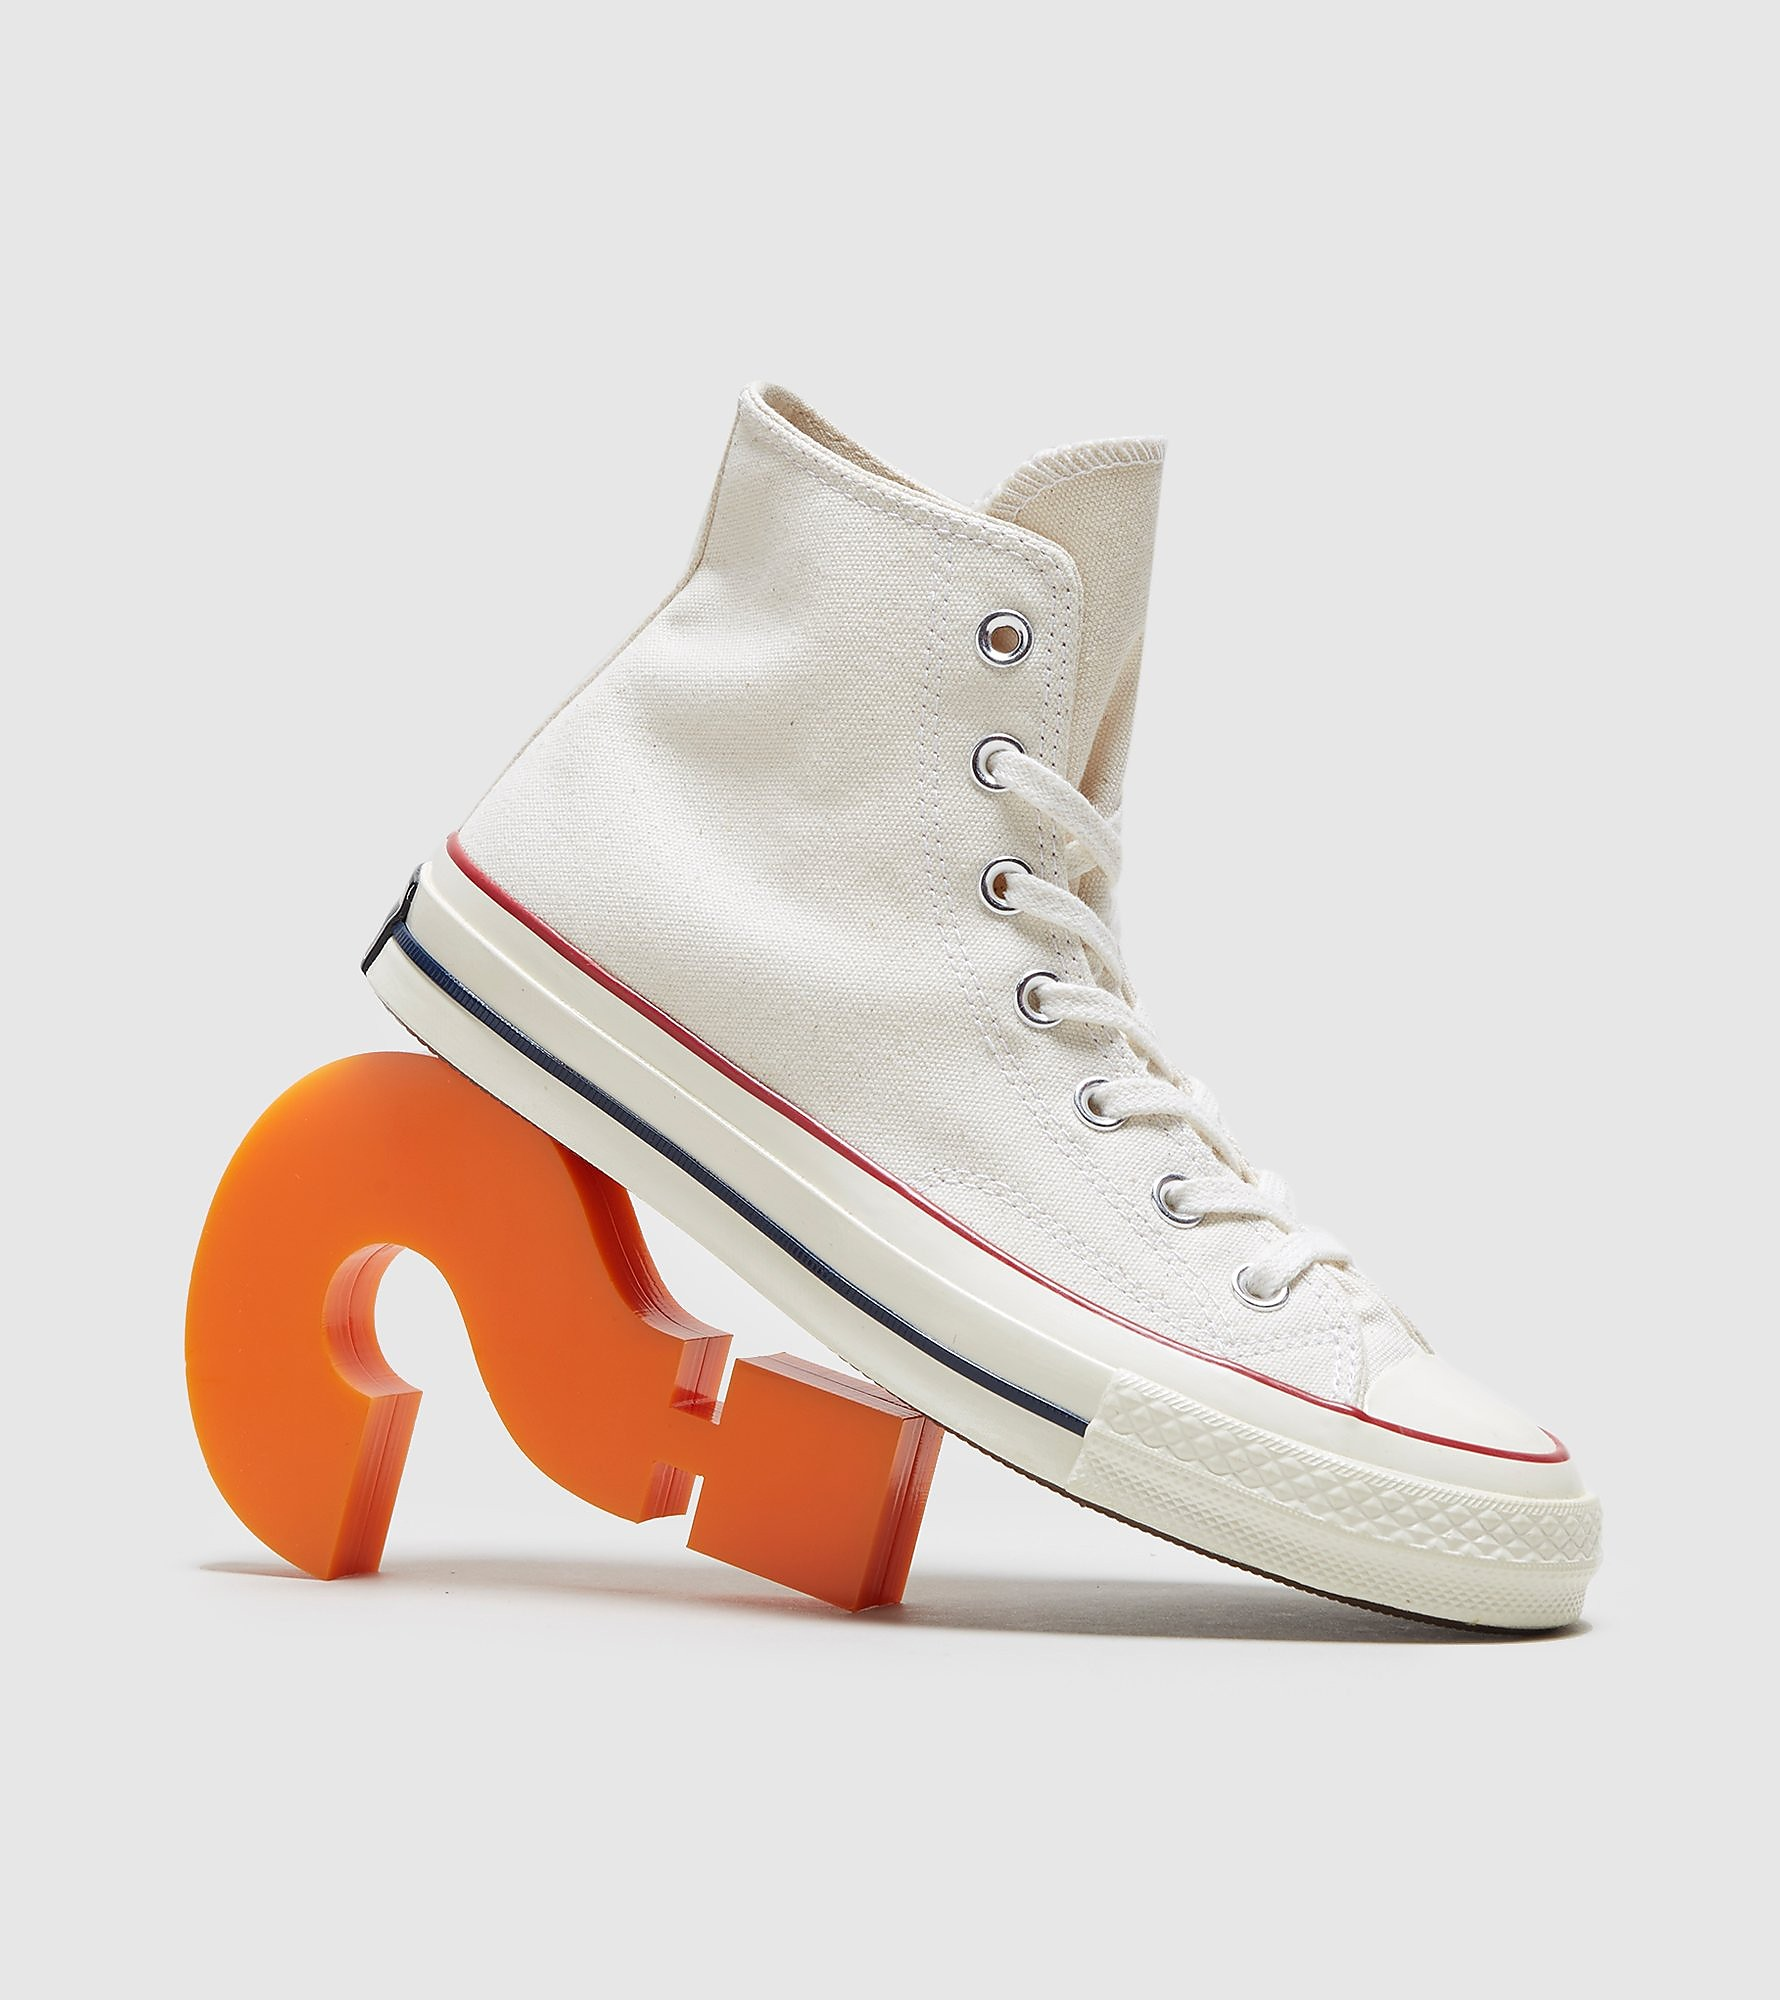 Converse Chuck Taylor All Star 70's High Women's